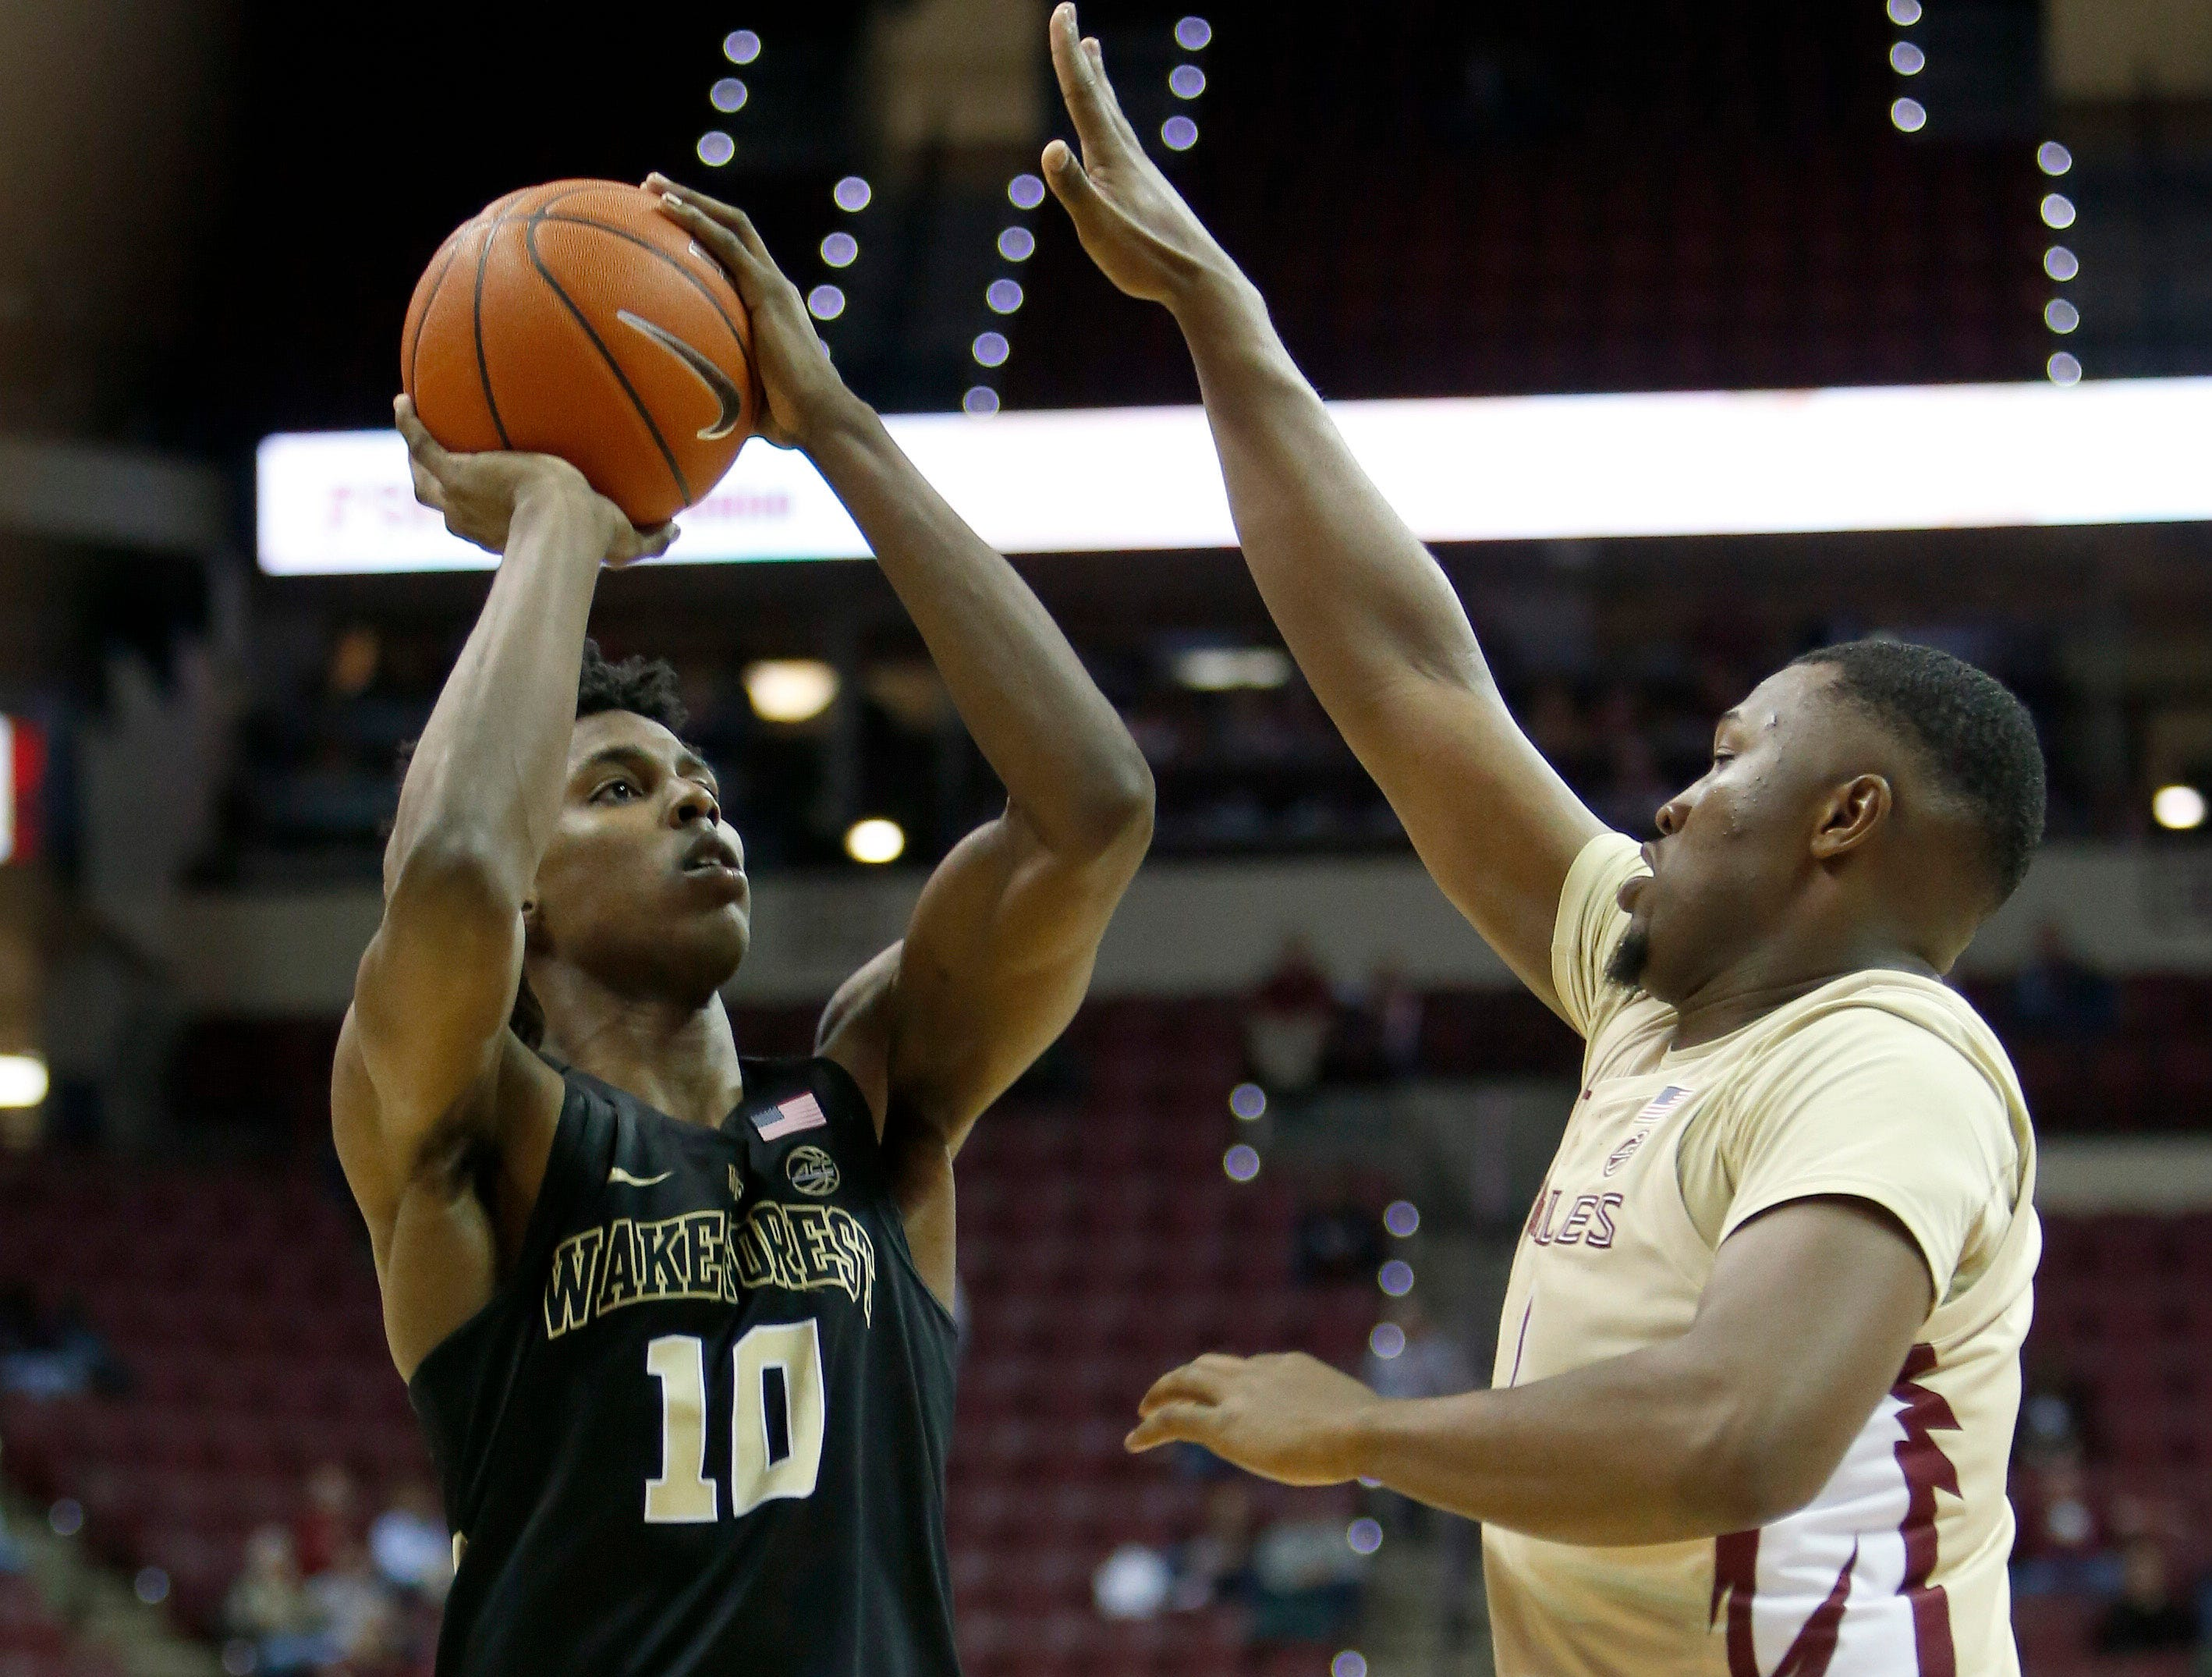 Feb 13, 2019; Tallahassee, FL, USA; Wake Forest Demon Deacons forward Jaylen Hoard (10) shoots the ball over Florida State Seminoles forward Raiquan Gray (1) during the second half at Donald L. Tucker Center. Mandatory Credit: Glenn Beil-USA TODAY Sports